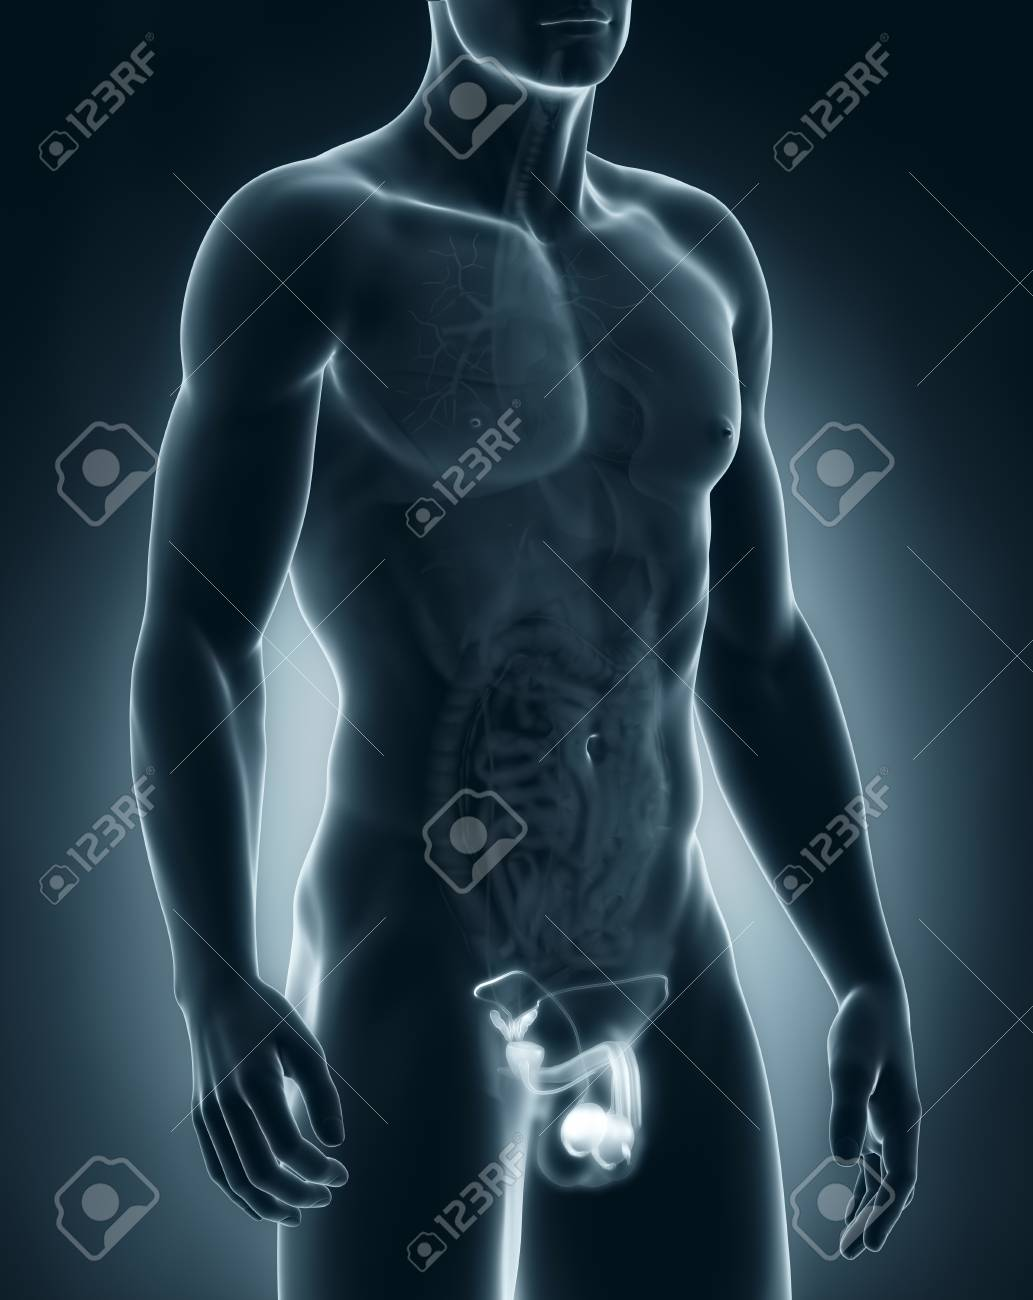 Male Genitalia Anatomy Stock Photo, Picture And Royalty Free Image ...